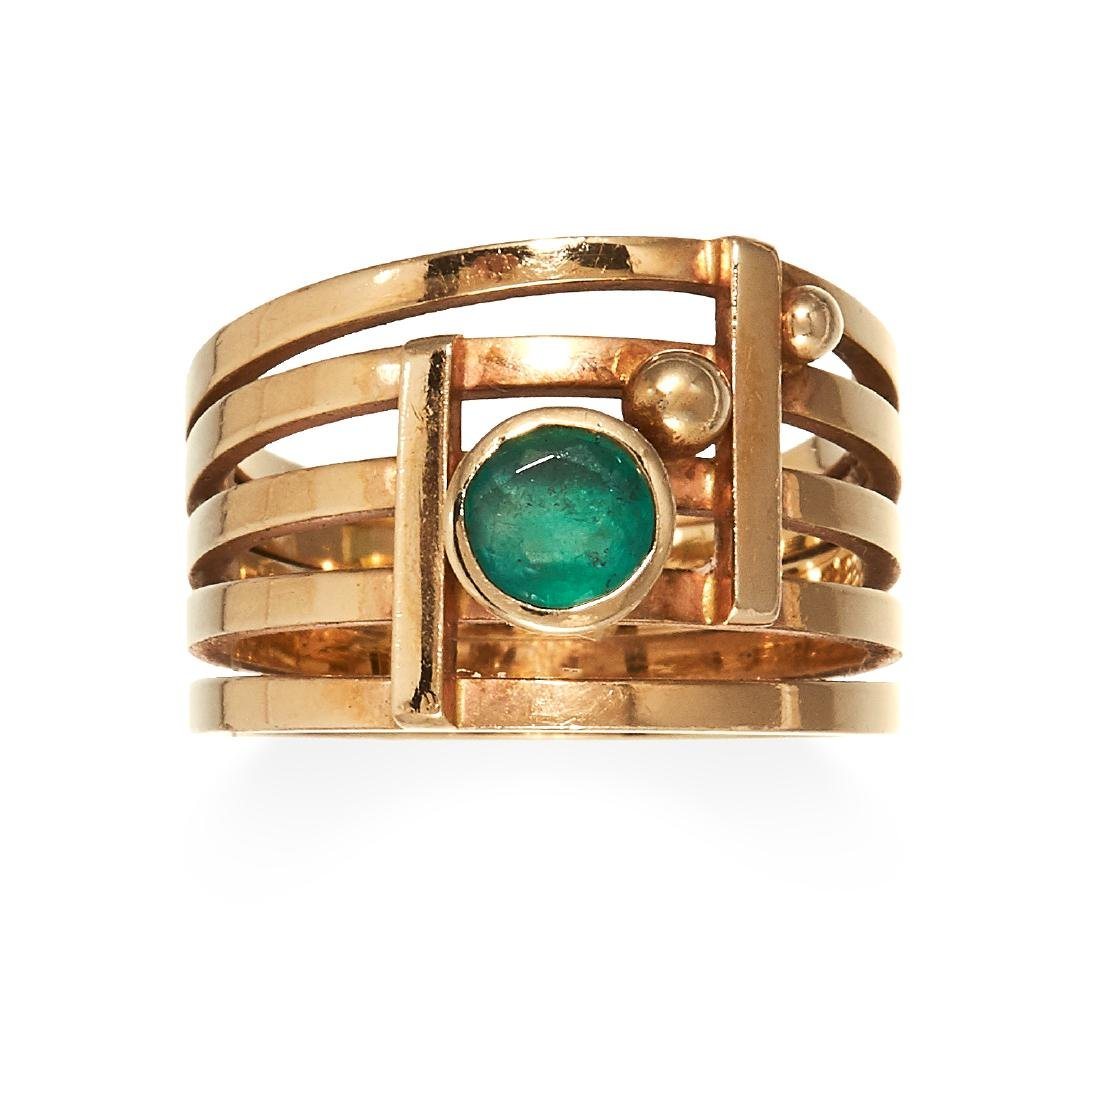 AN EMERALD DRESS RING in high carat yellow gold, the